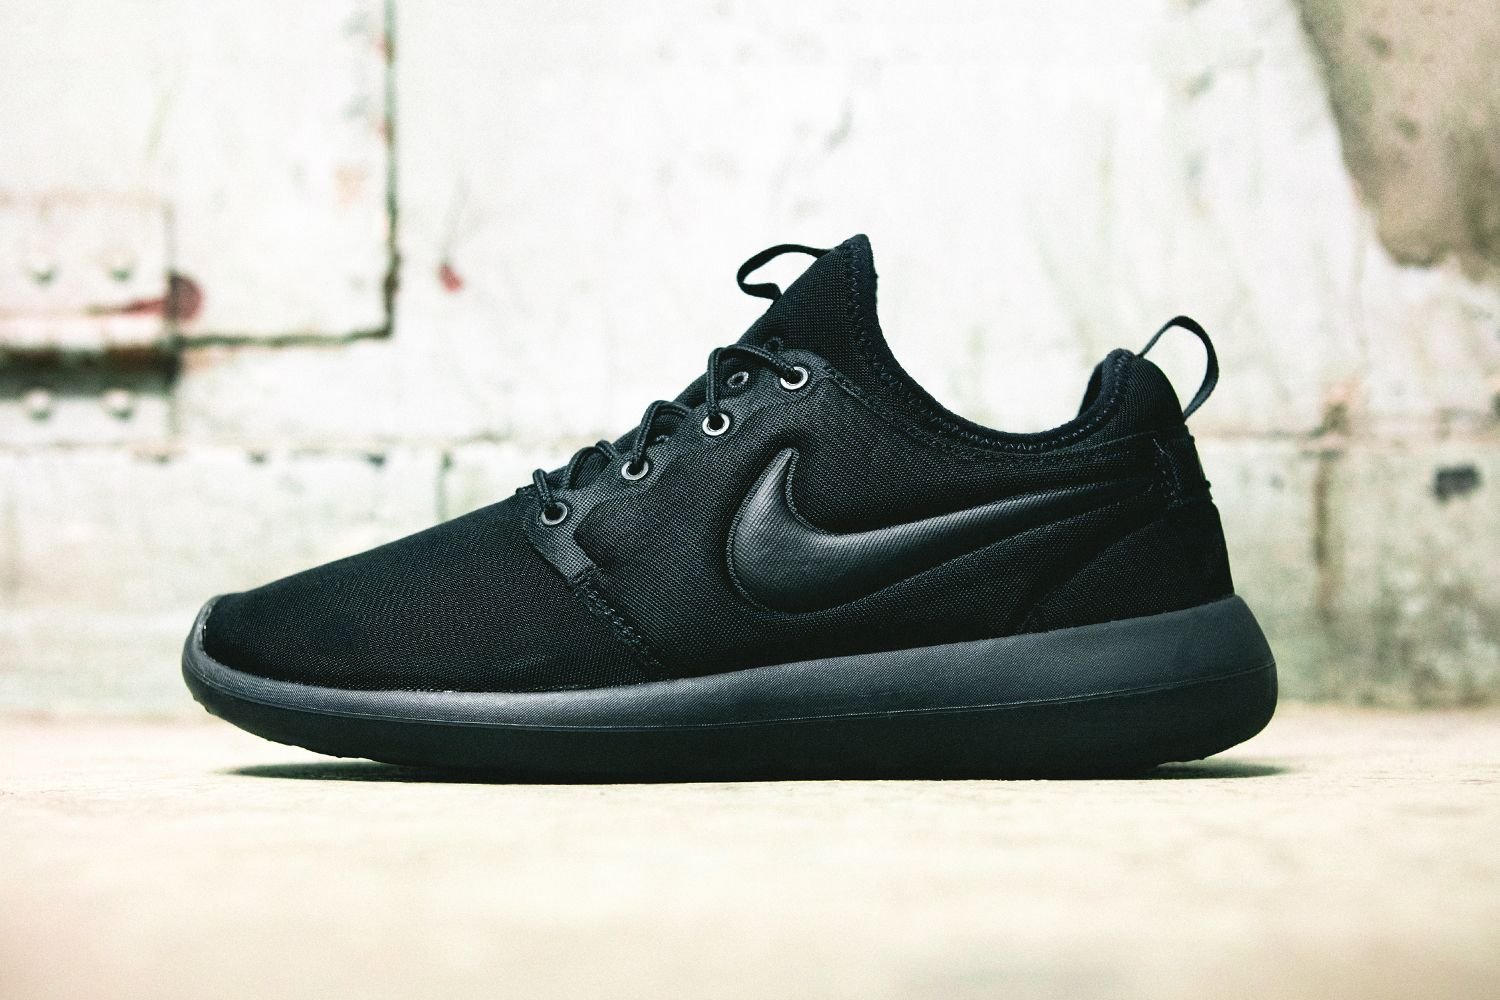 buy online 4e268 6e931 Nike Roshe Two at Finish Line | Sneakers Shoes & Heels ...